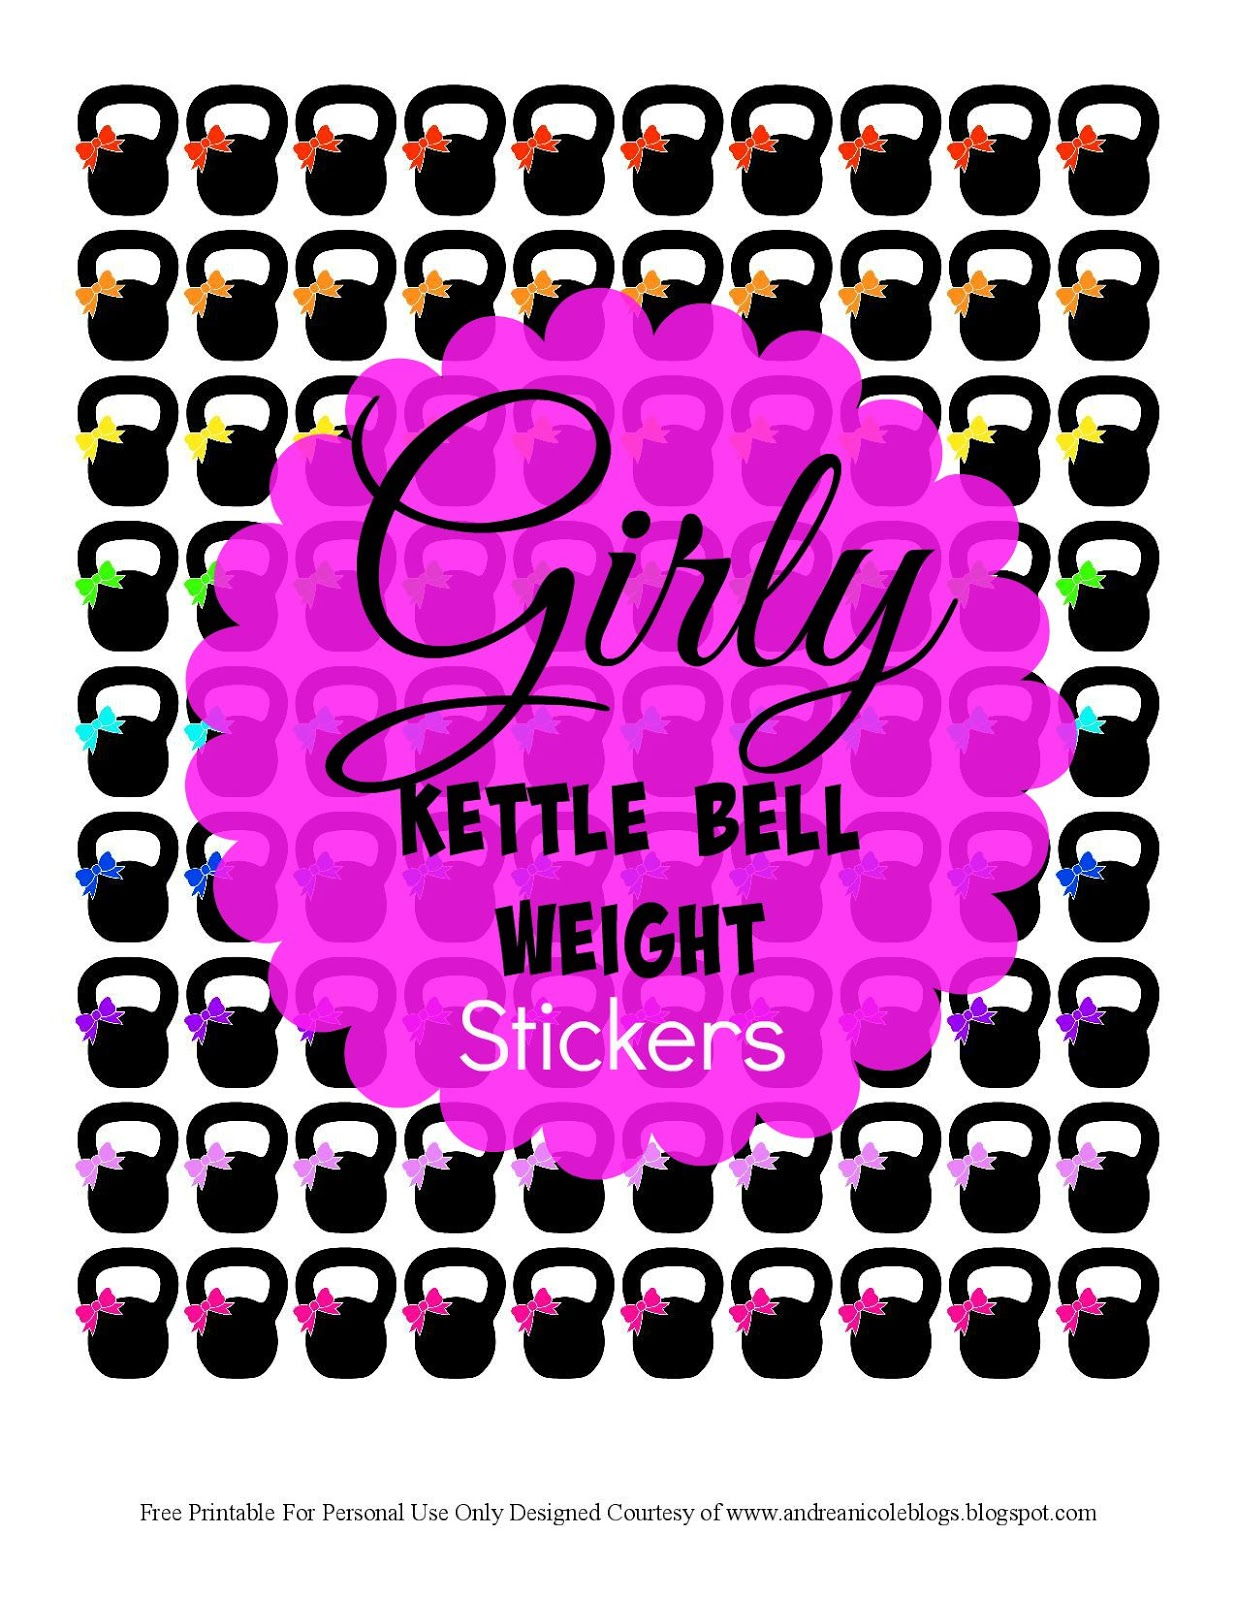 Andrea Nicole Free Printable Girly Fitness Kettle Bell